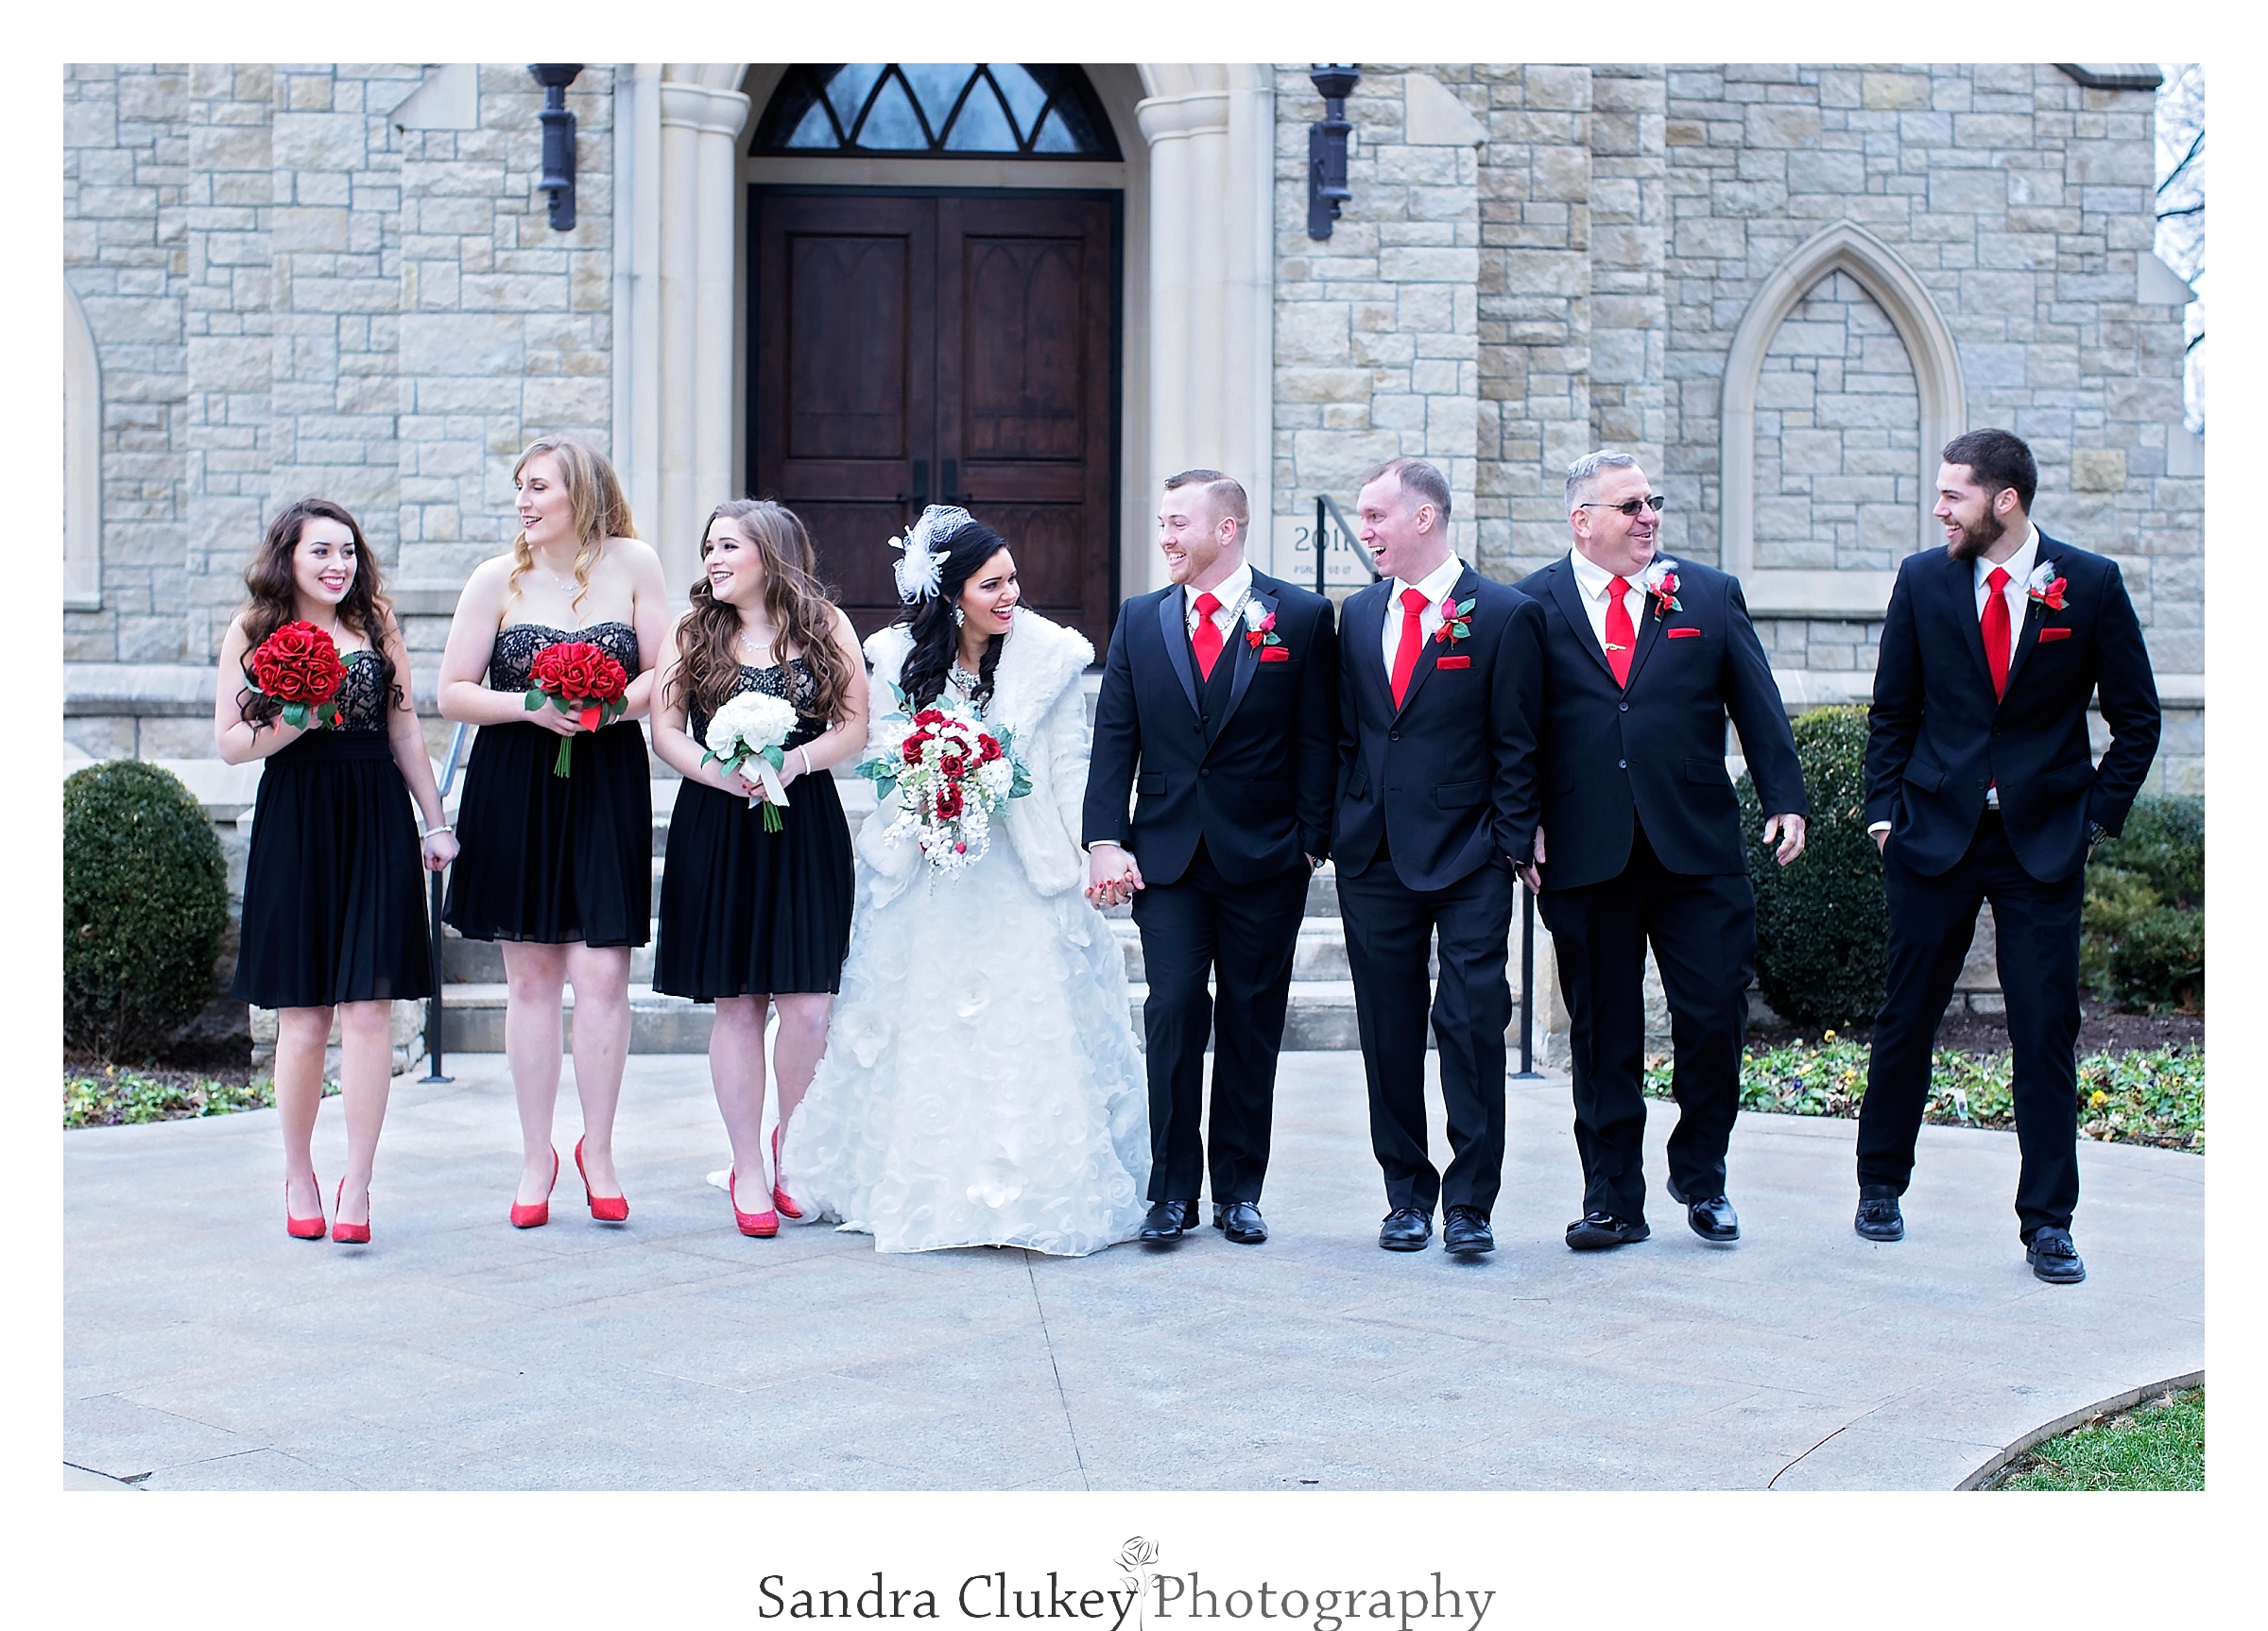 Gathering of the wedding party at  Lee University chapel, Cleveland TN.